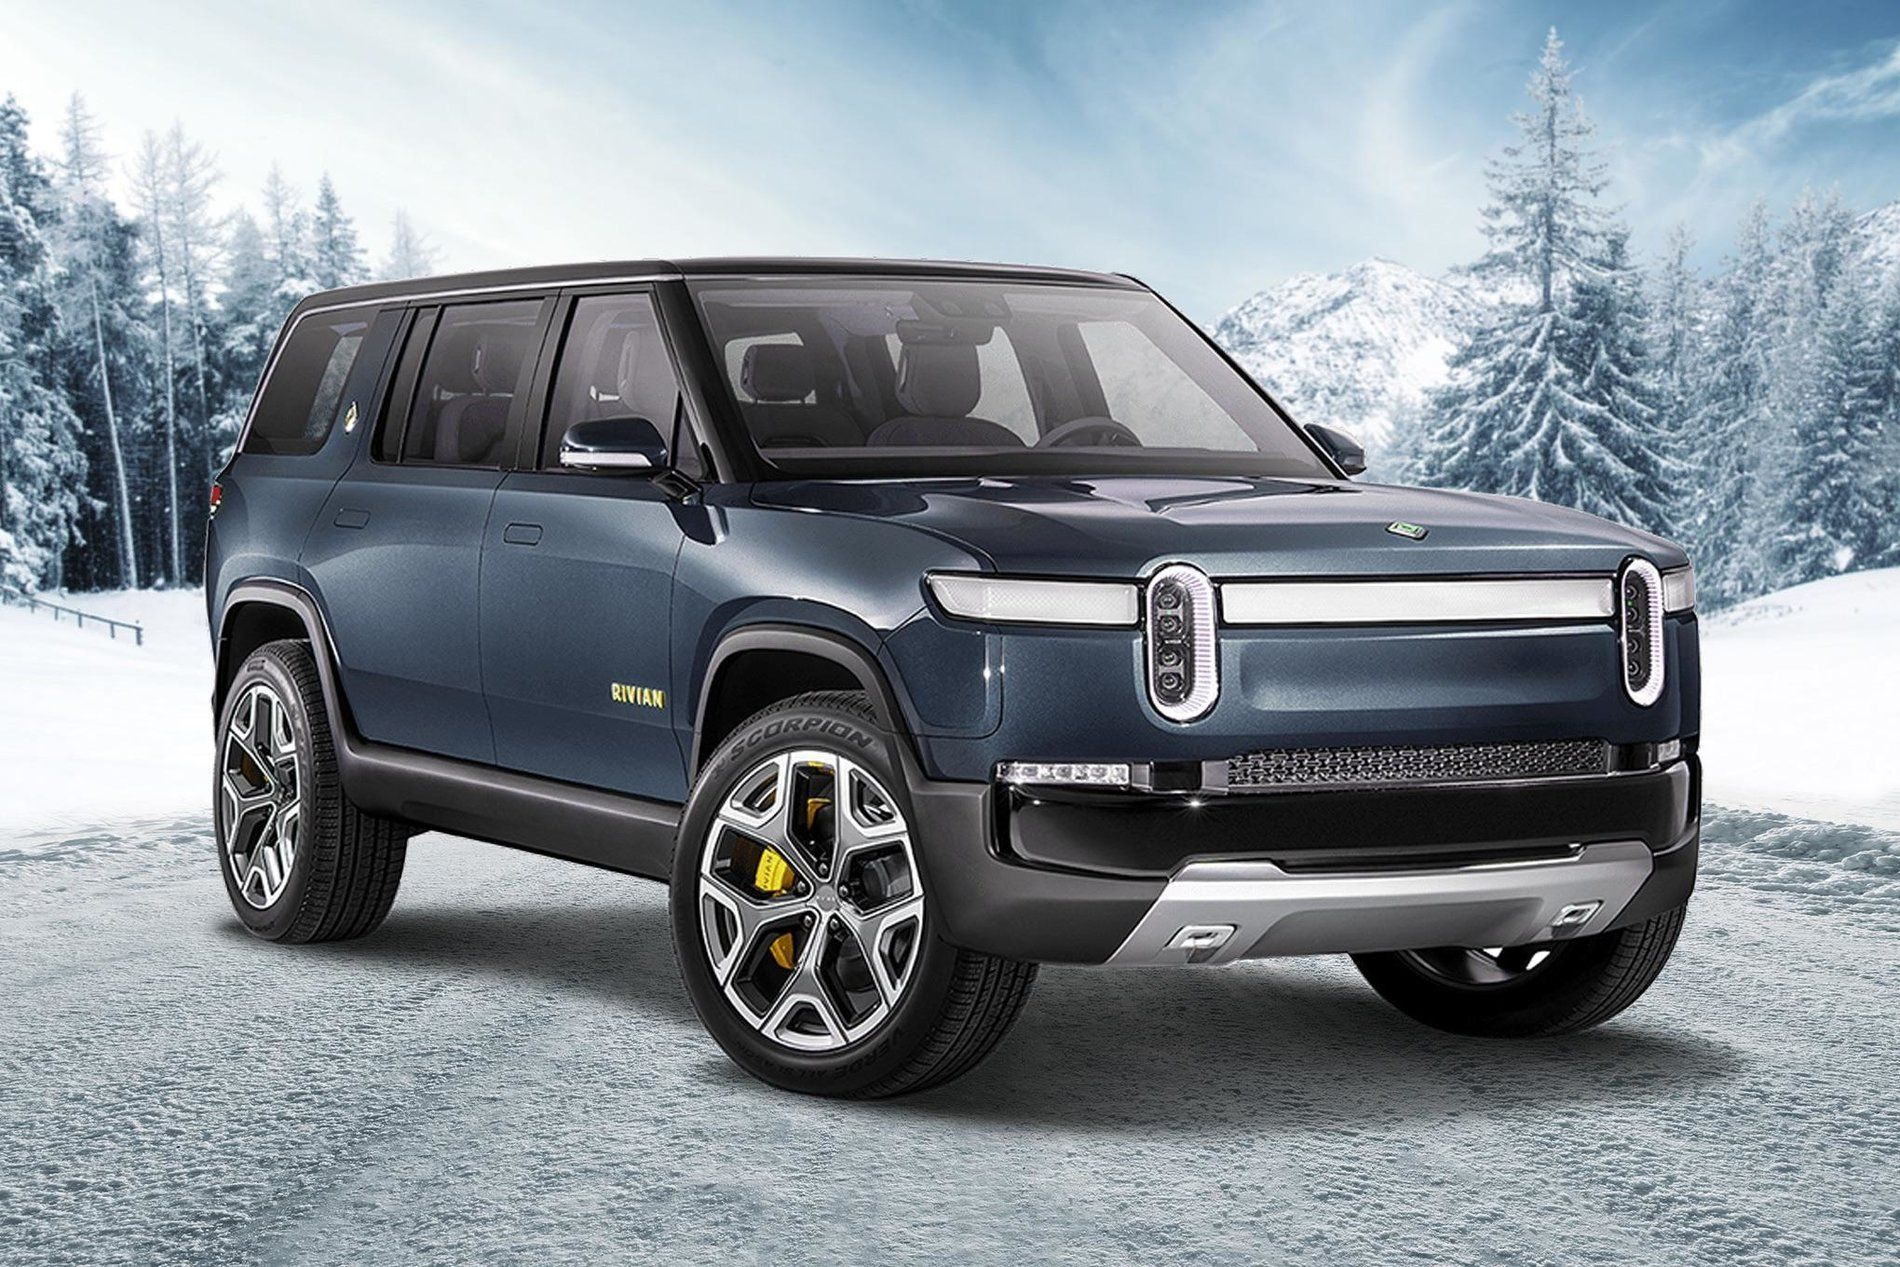 These Are The Upcoming EV SUVs We're Looking Forward To The Most